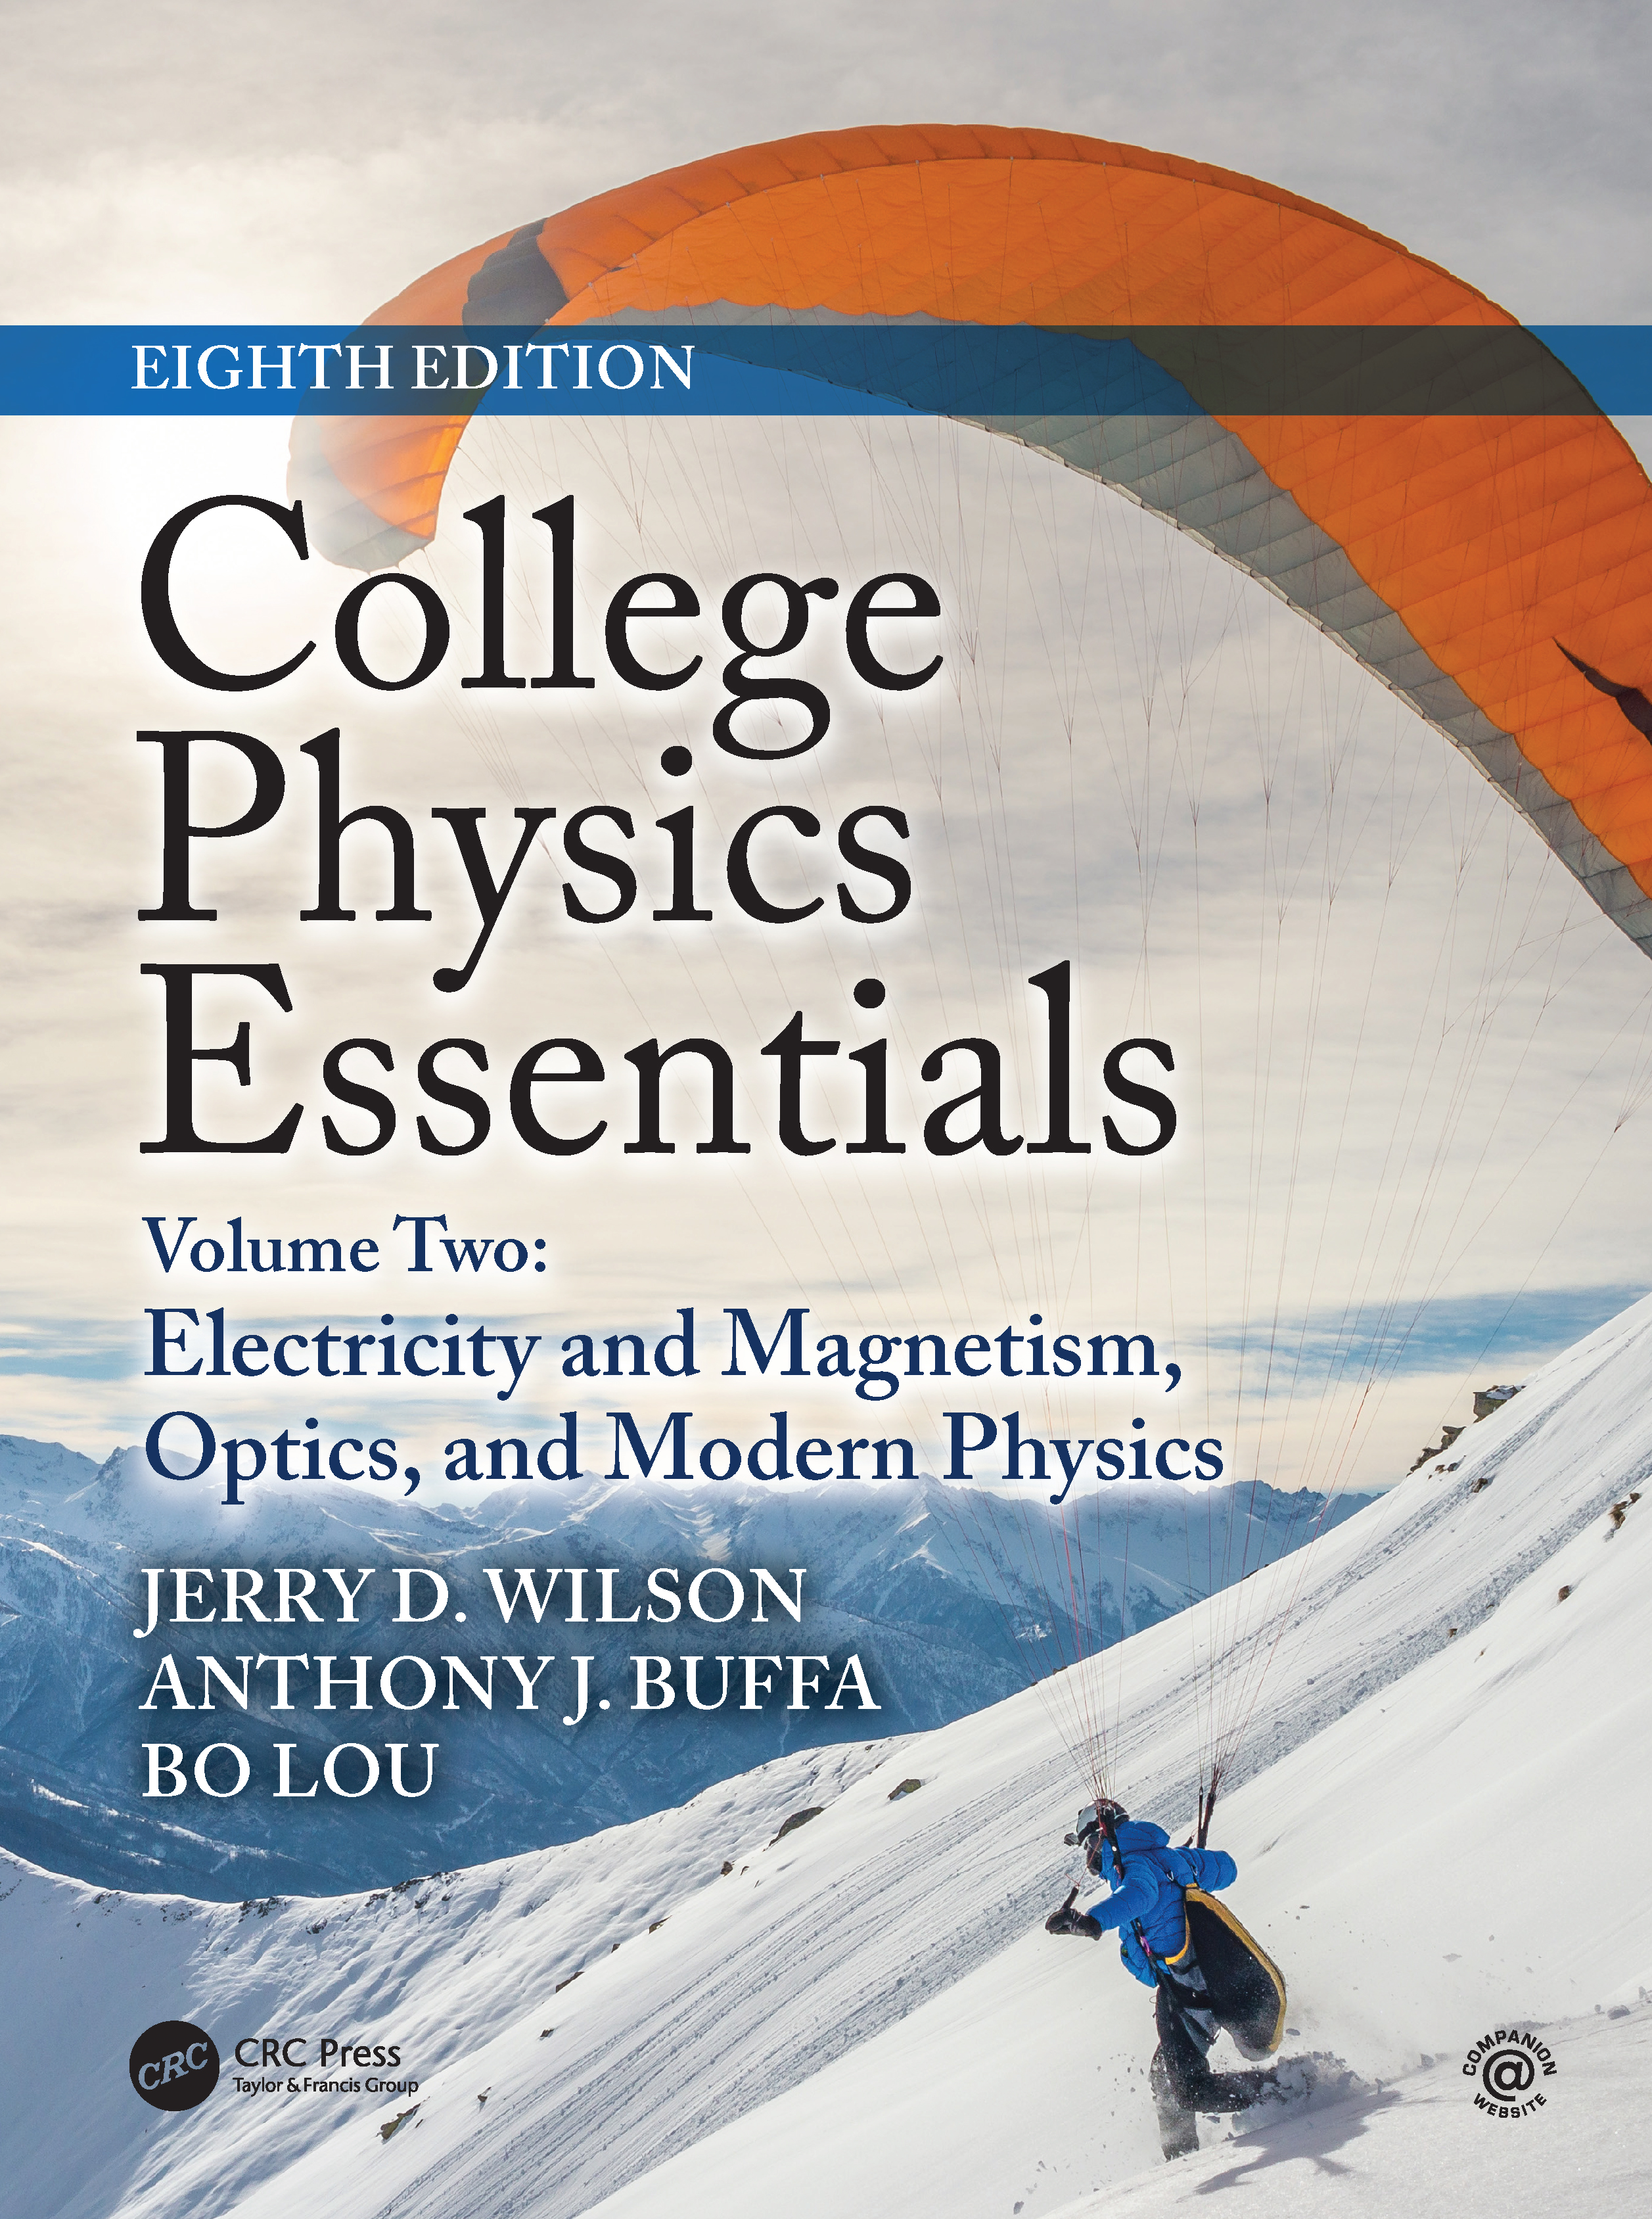 College Physics Essentials, Eighth Edition: Electricity and Magnetism, Optics, Modern Physics (Volume Two) book cover